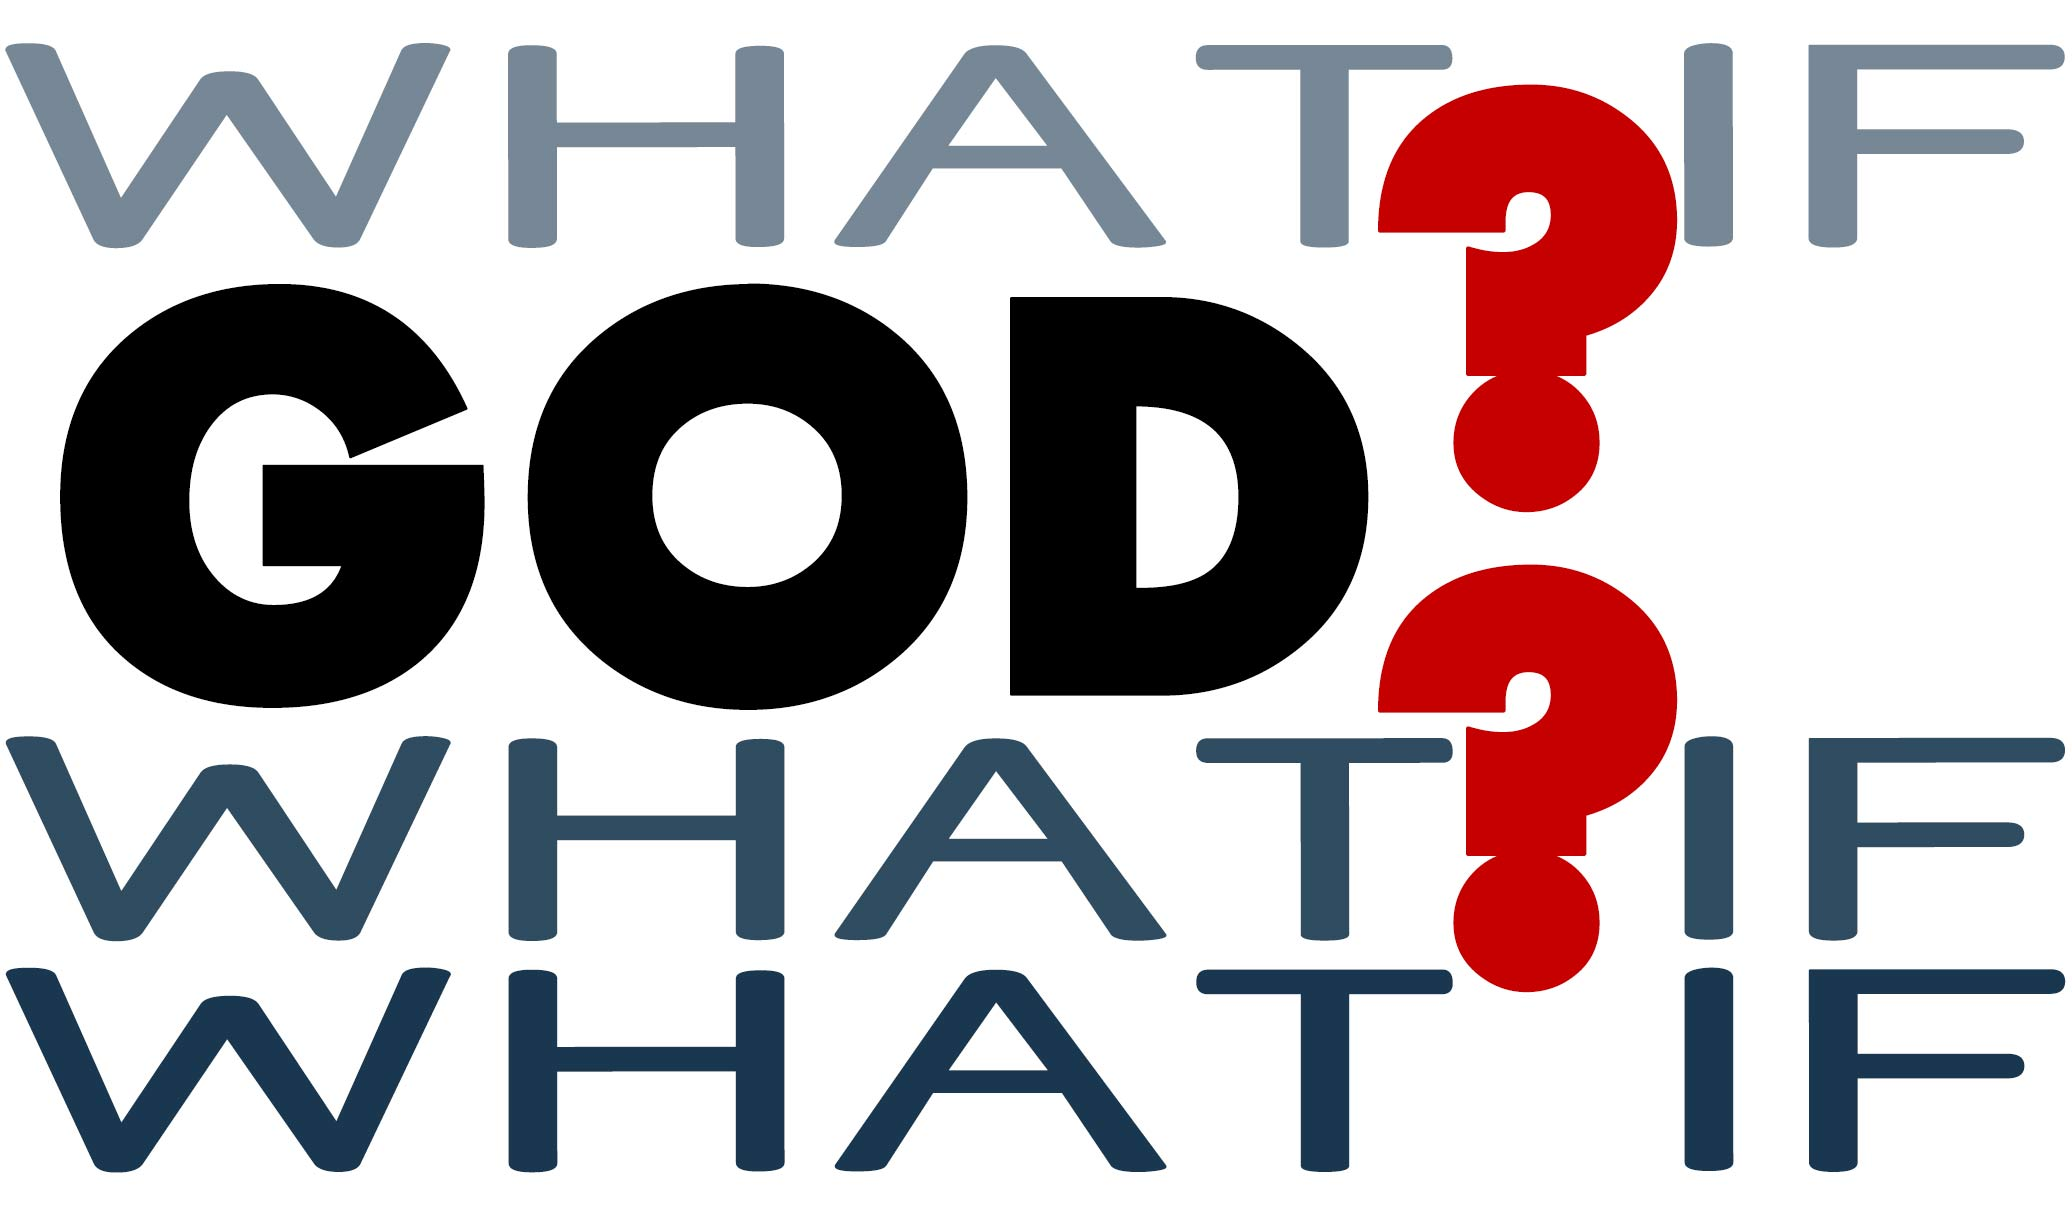 Hwat-if-you-were-god